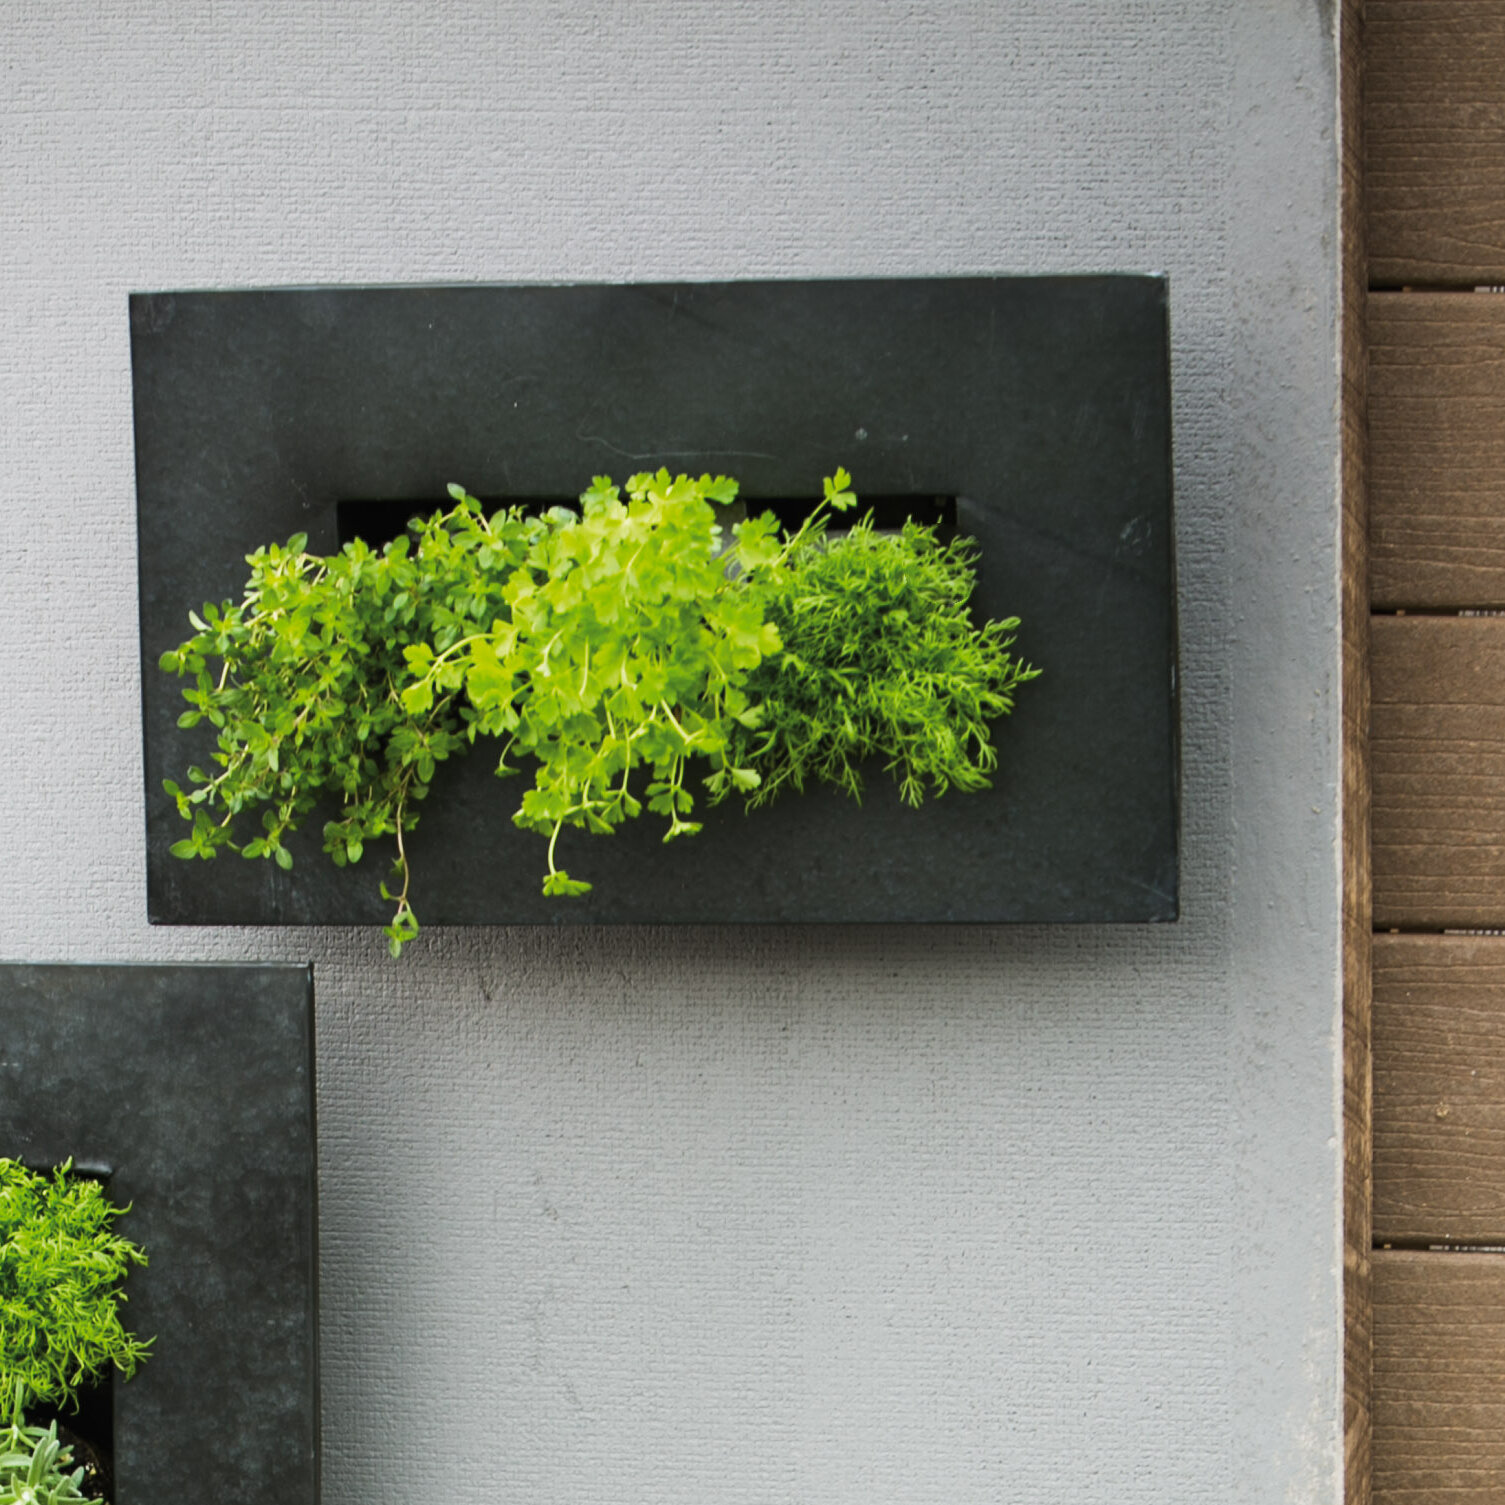 Details About Evergreen Enterprises Inc Zinc 12 Pocket Metal Wall Planter